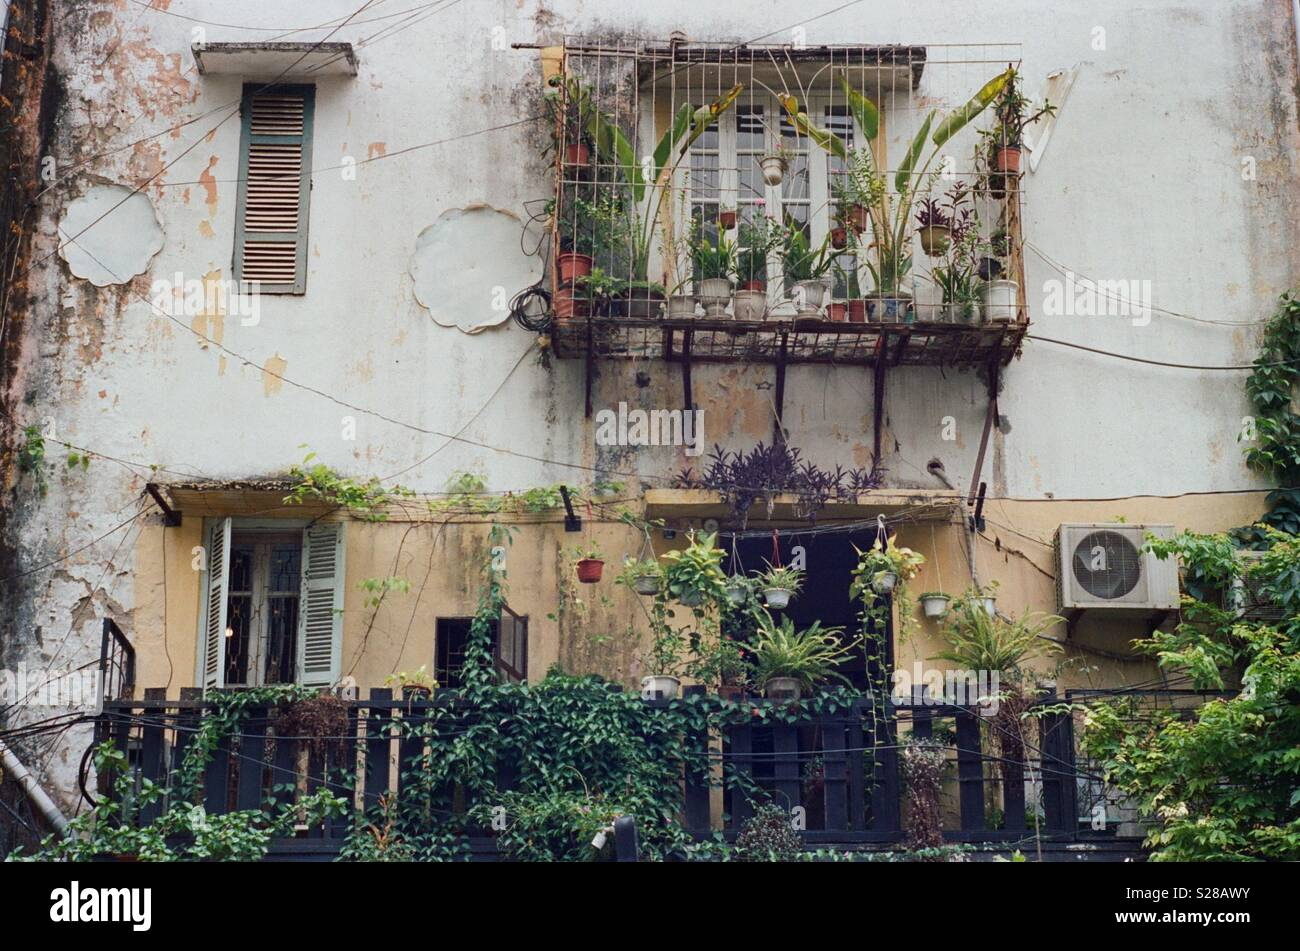 Rusty house with flowers - Stock Image